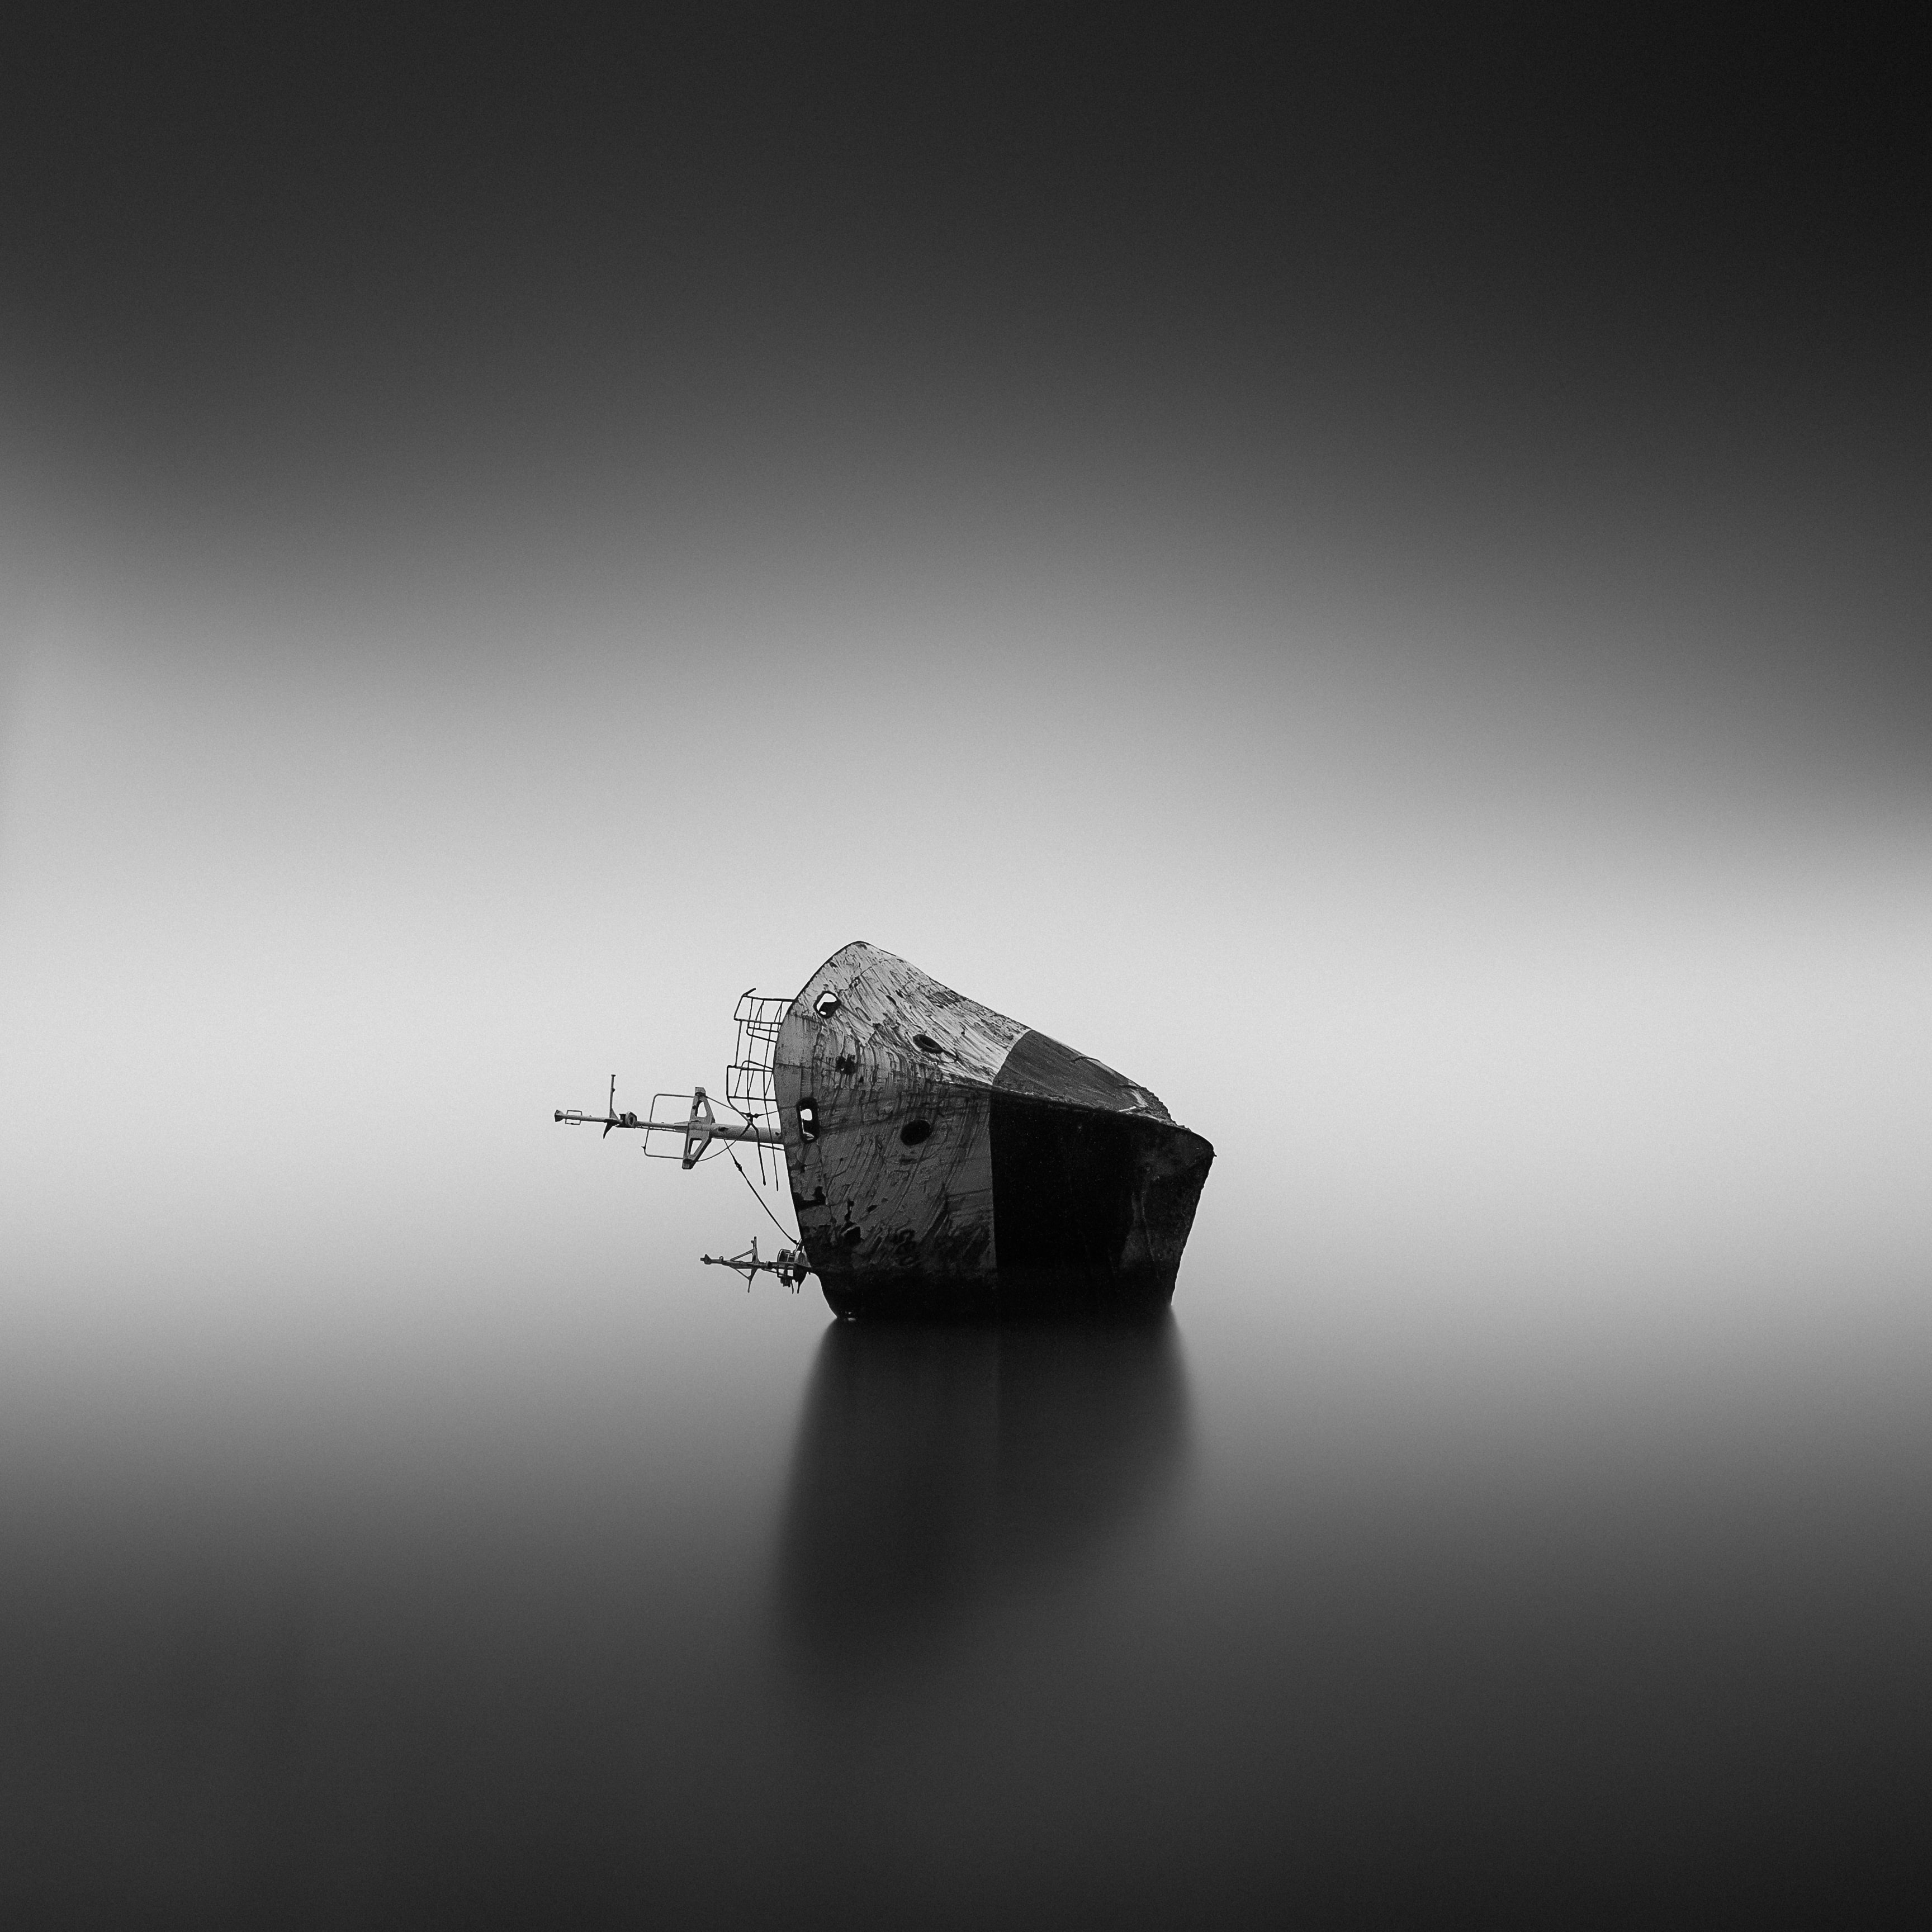 Black and white photo of a sinking ship on still water. Photo courtesy of Alwi Alaydrus on Unsplash.